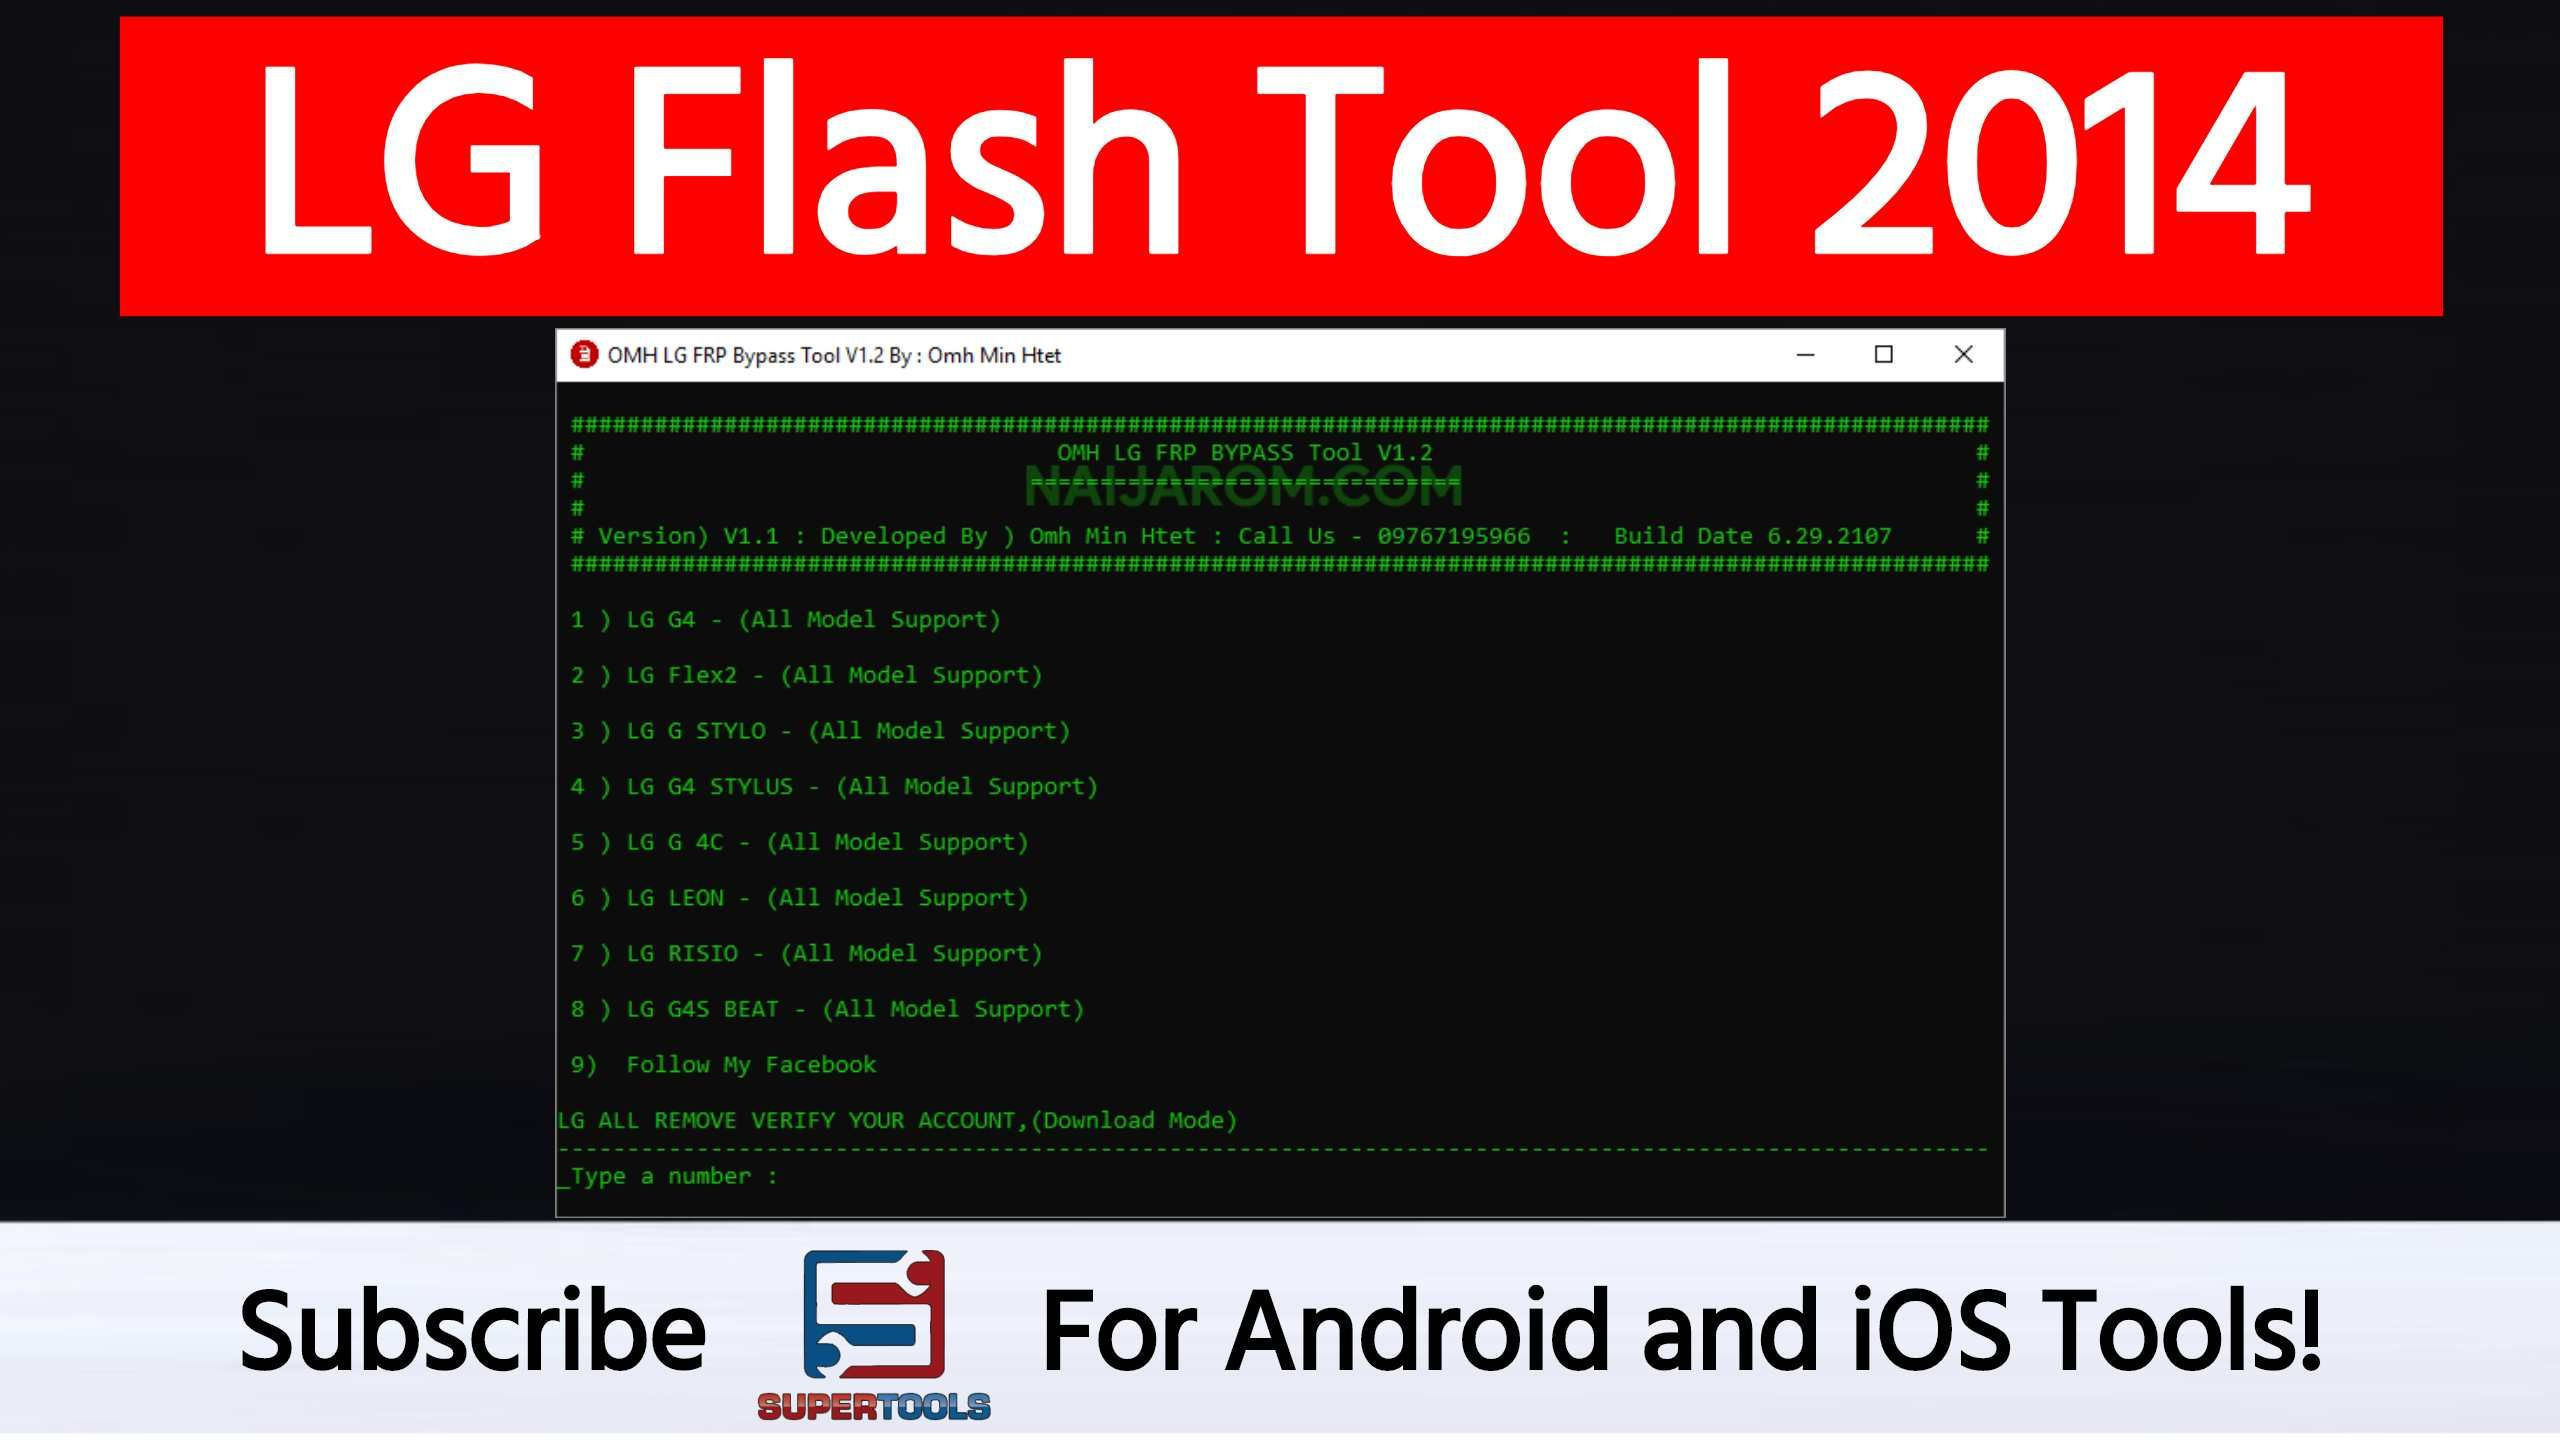 LG Flash Tool 2014 helps you to flash your LG devices with